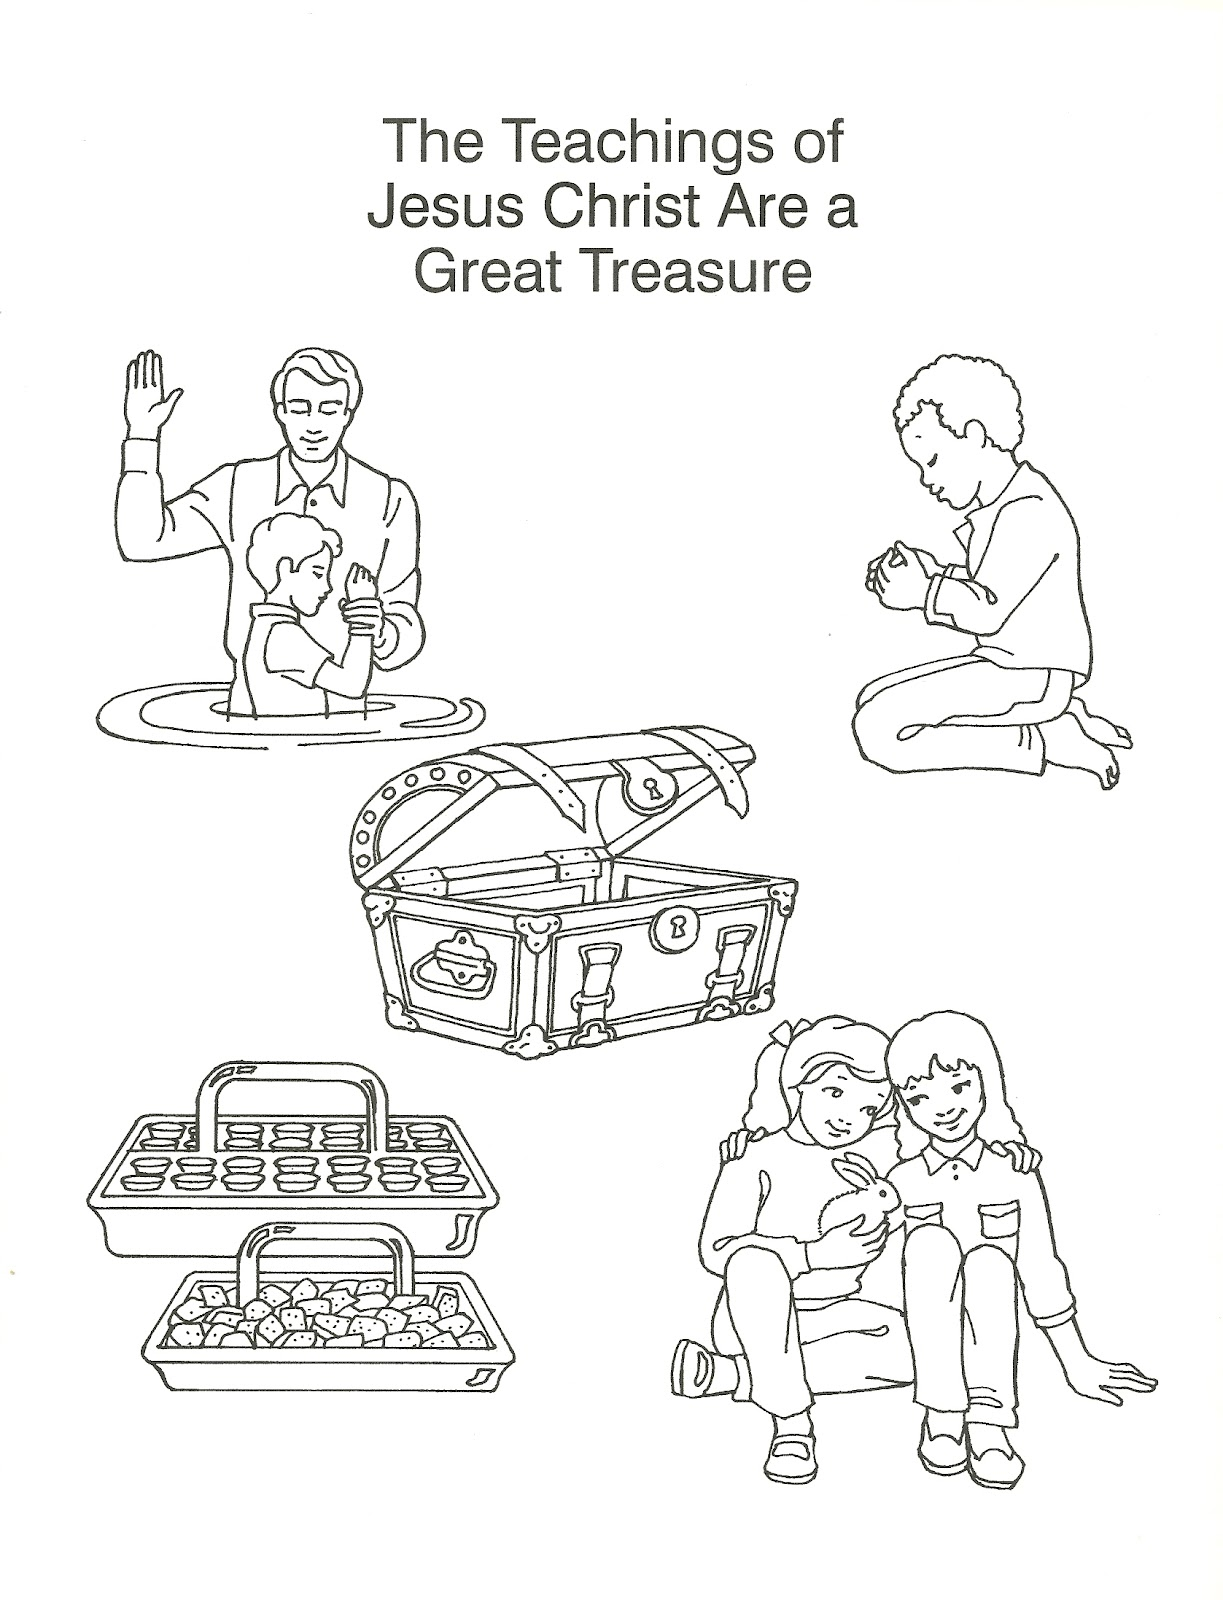 Free coloring pages of treasures in heaven